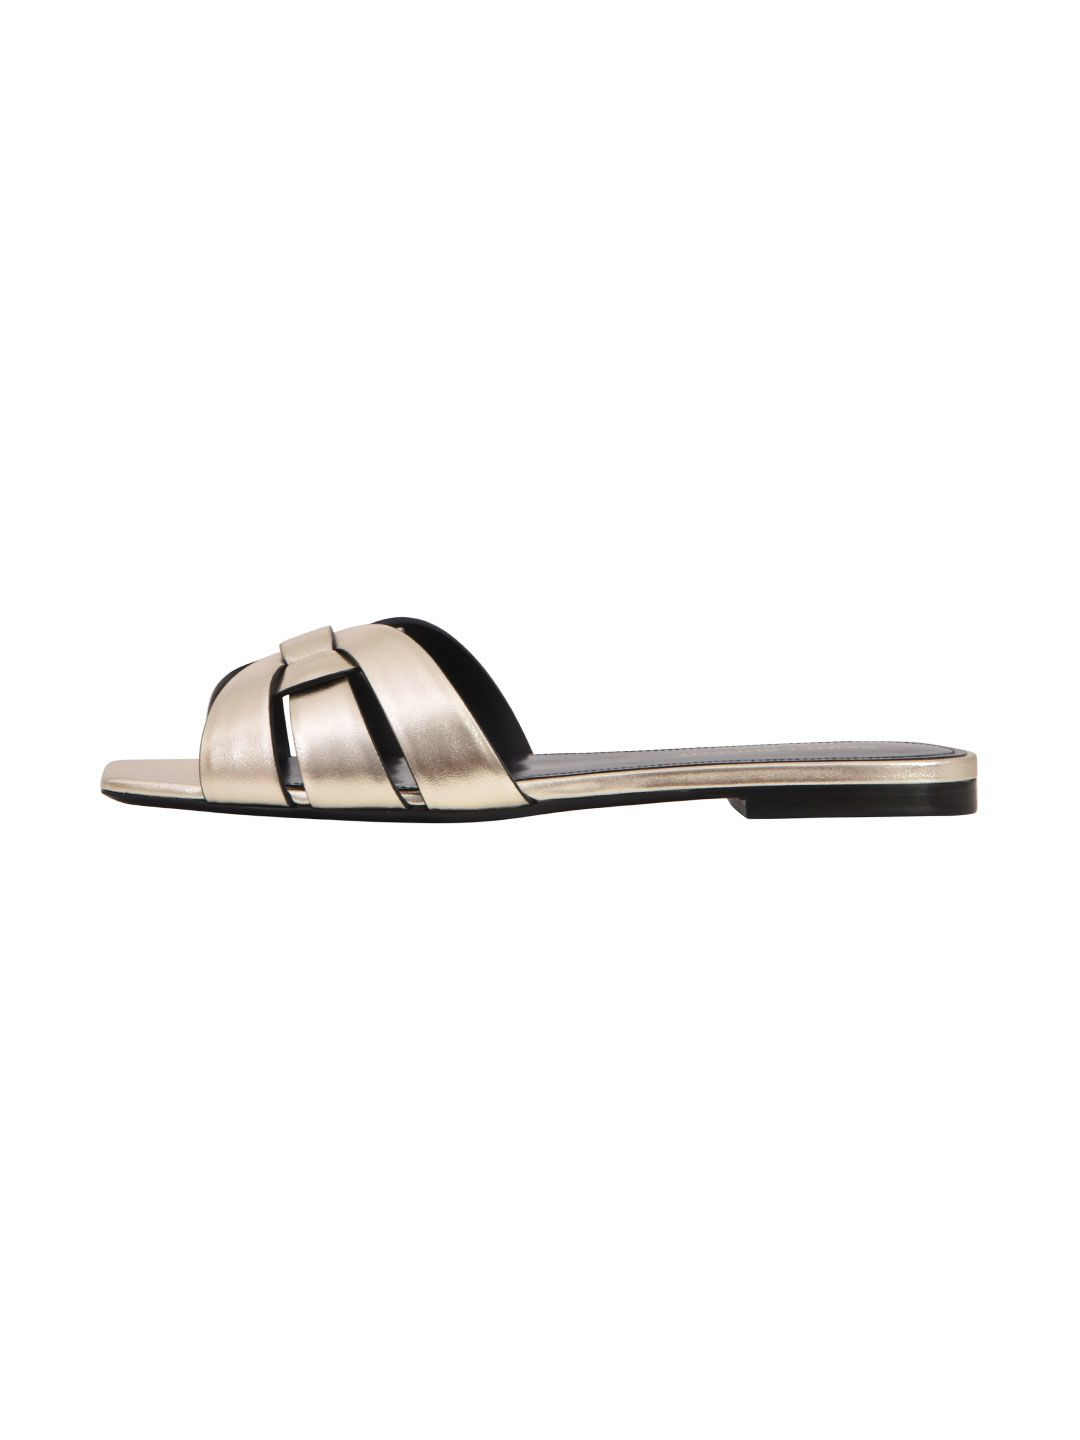 ef9d4d80718 Saint Laurent Nu Pieds Flat Sandals In Platinum